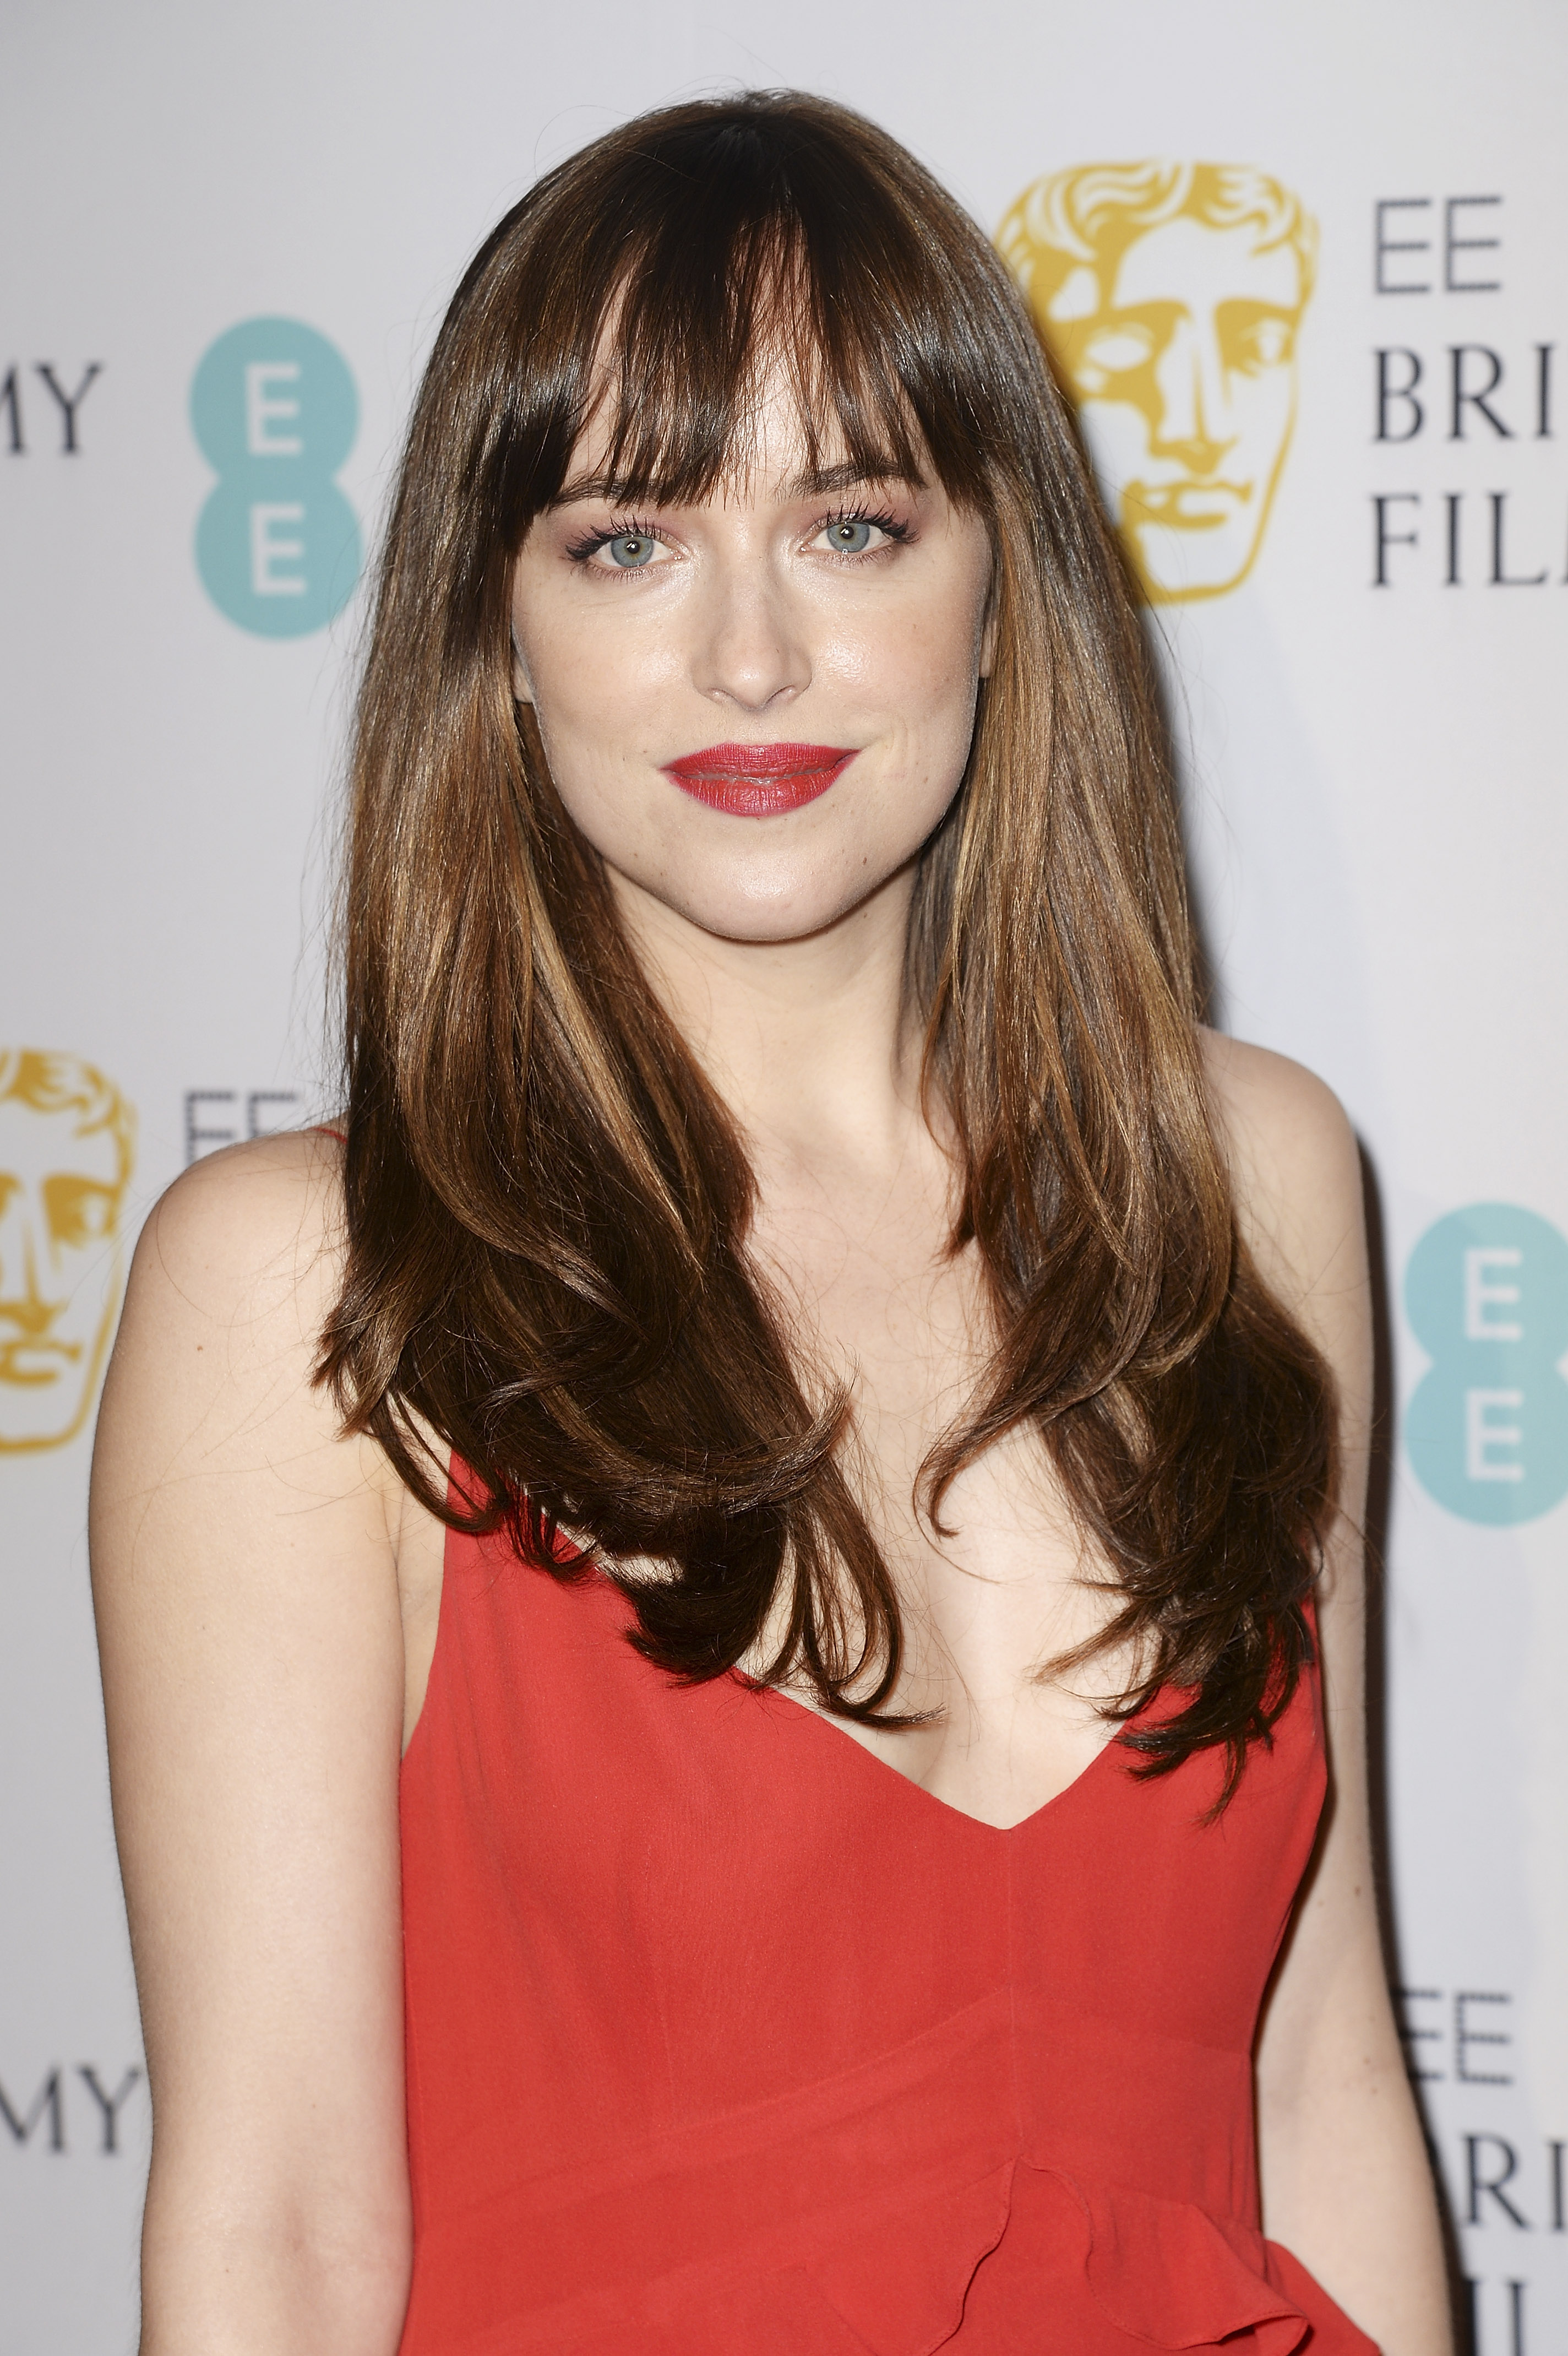 Sensational 100 Hairstyles With Bangs You39Ll Want To Copy Celebrity Haircuts Short Hairstyles Gunalazisus